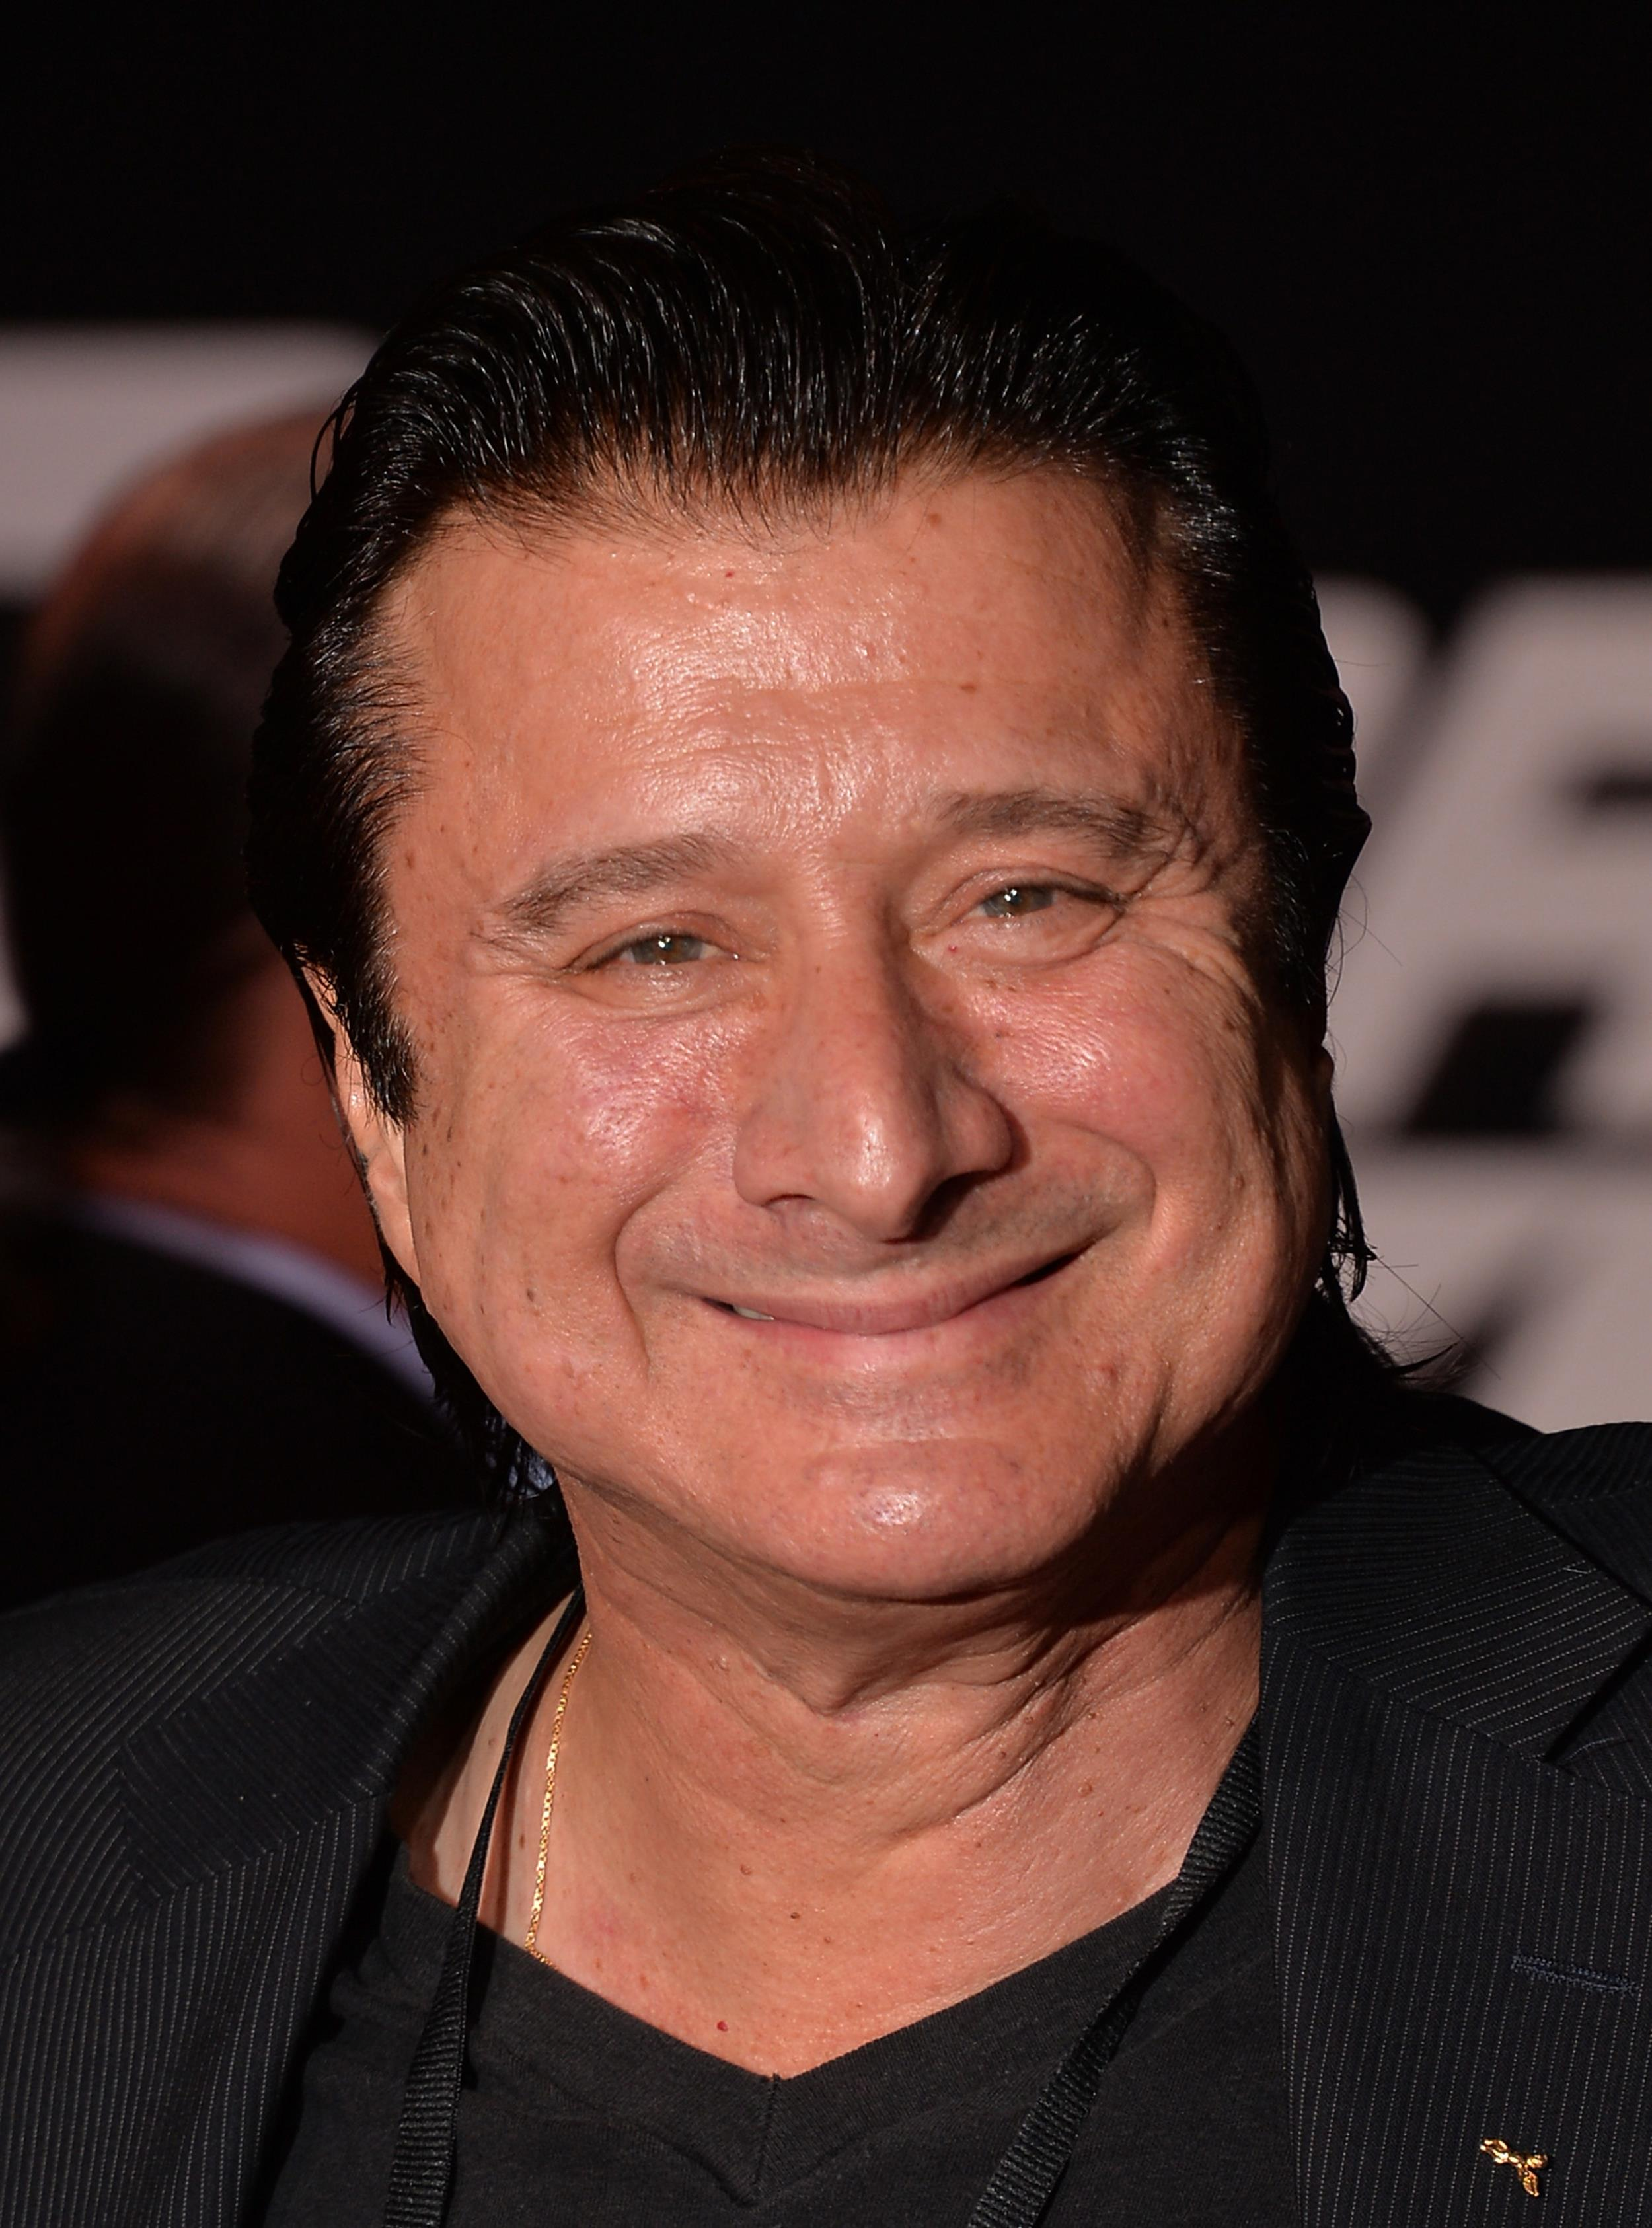 Steve Perry born August 31 1947 is an American television writer and science fiction author